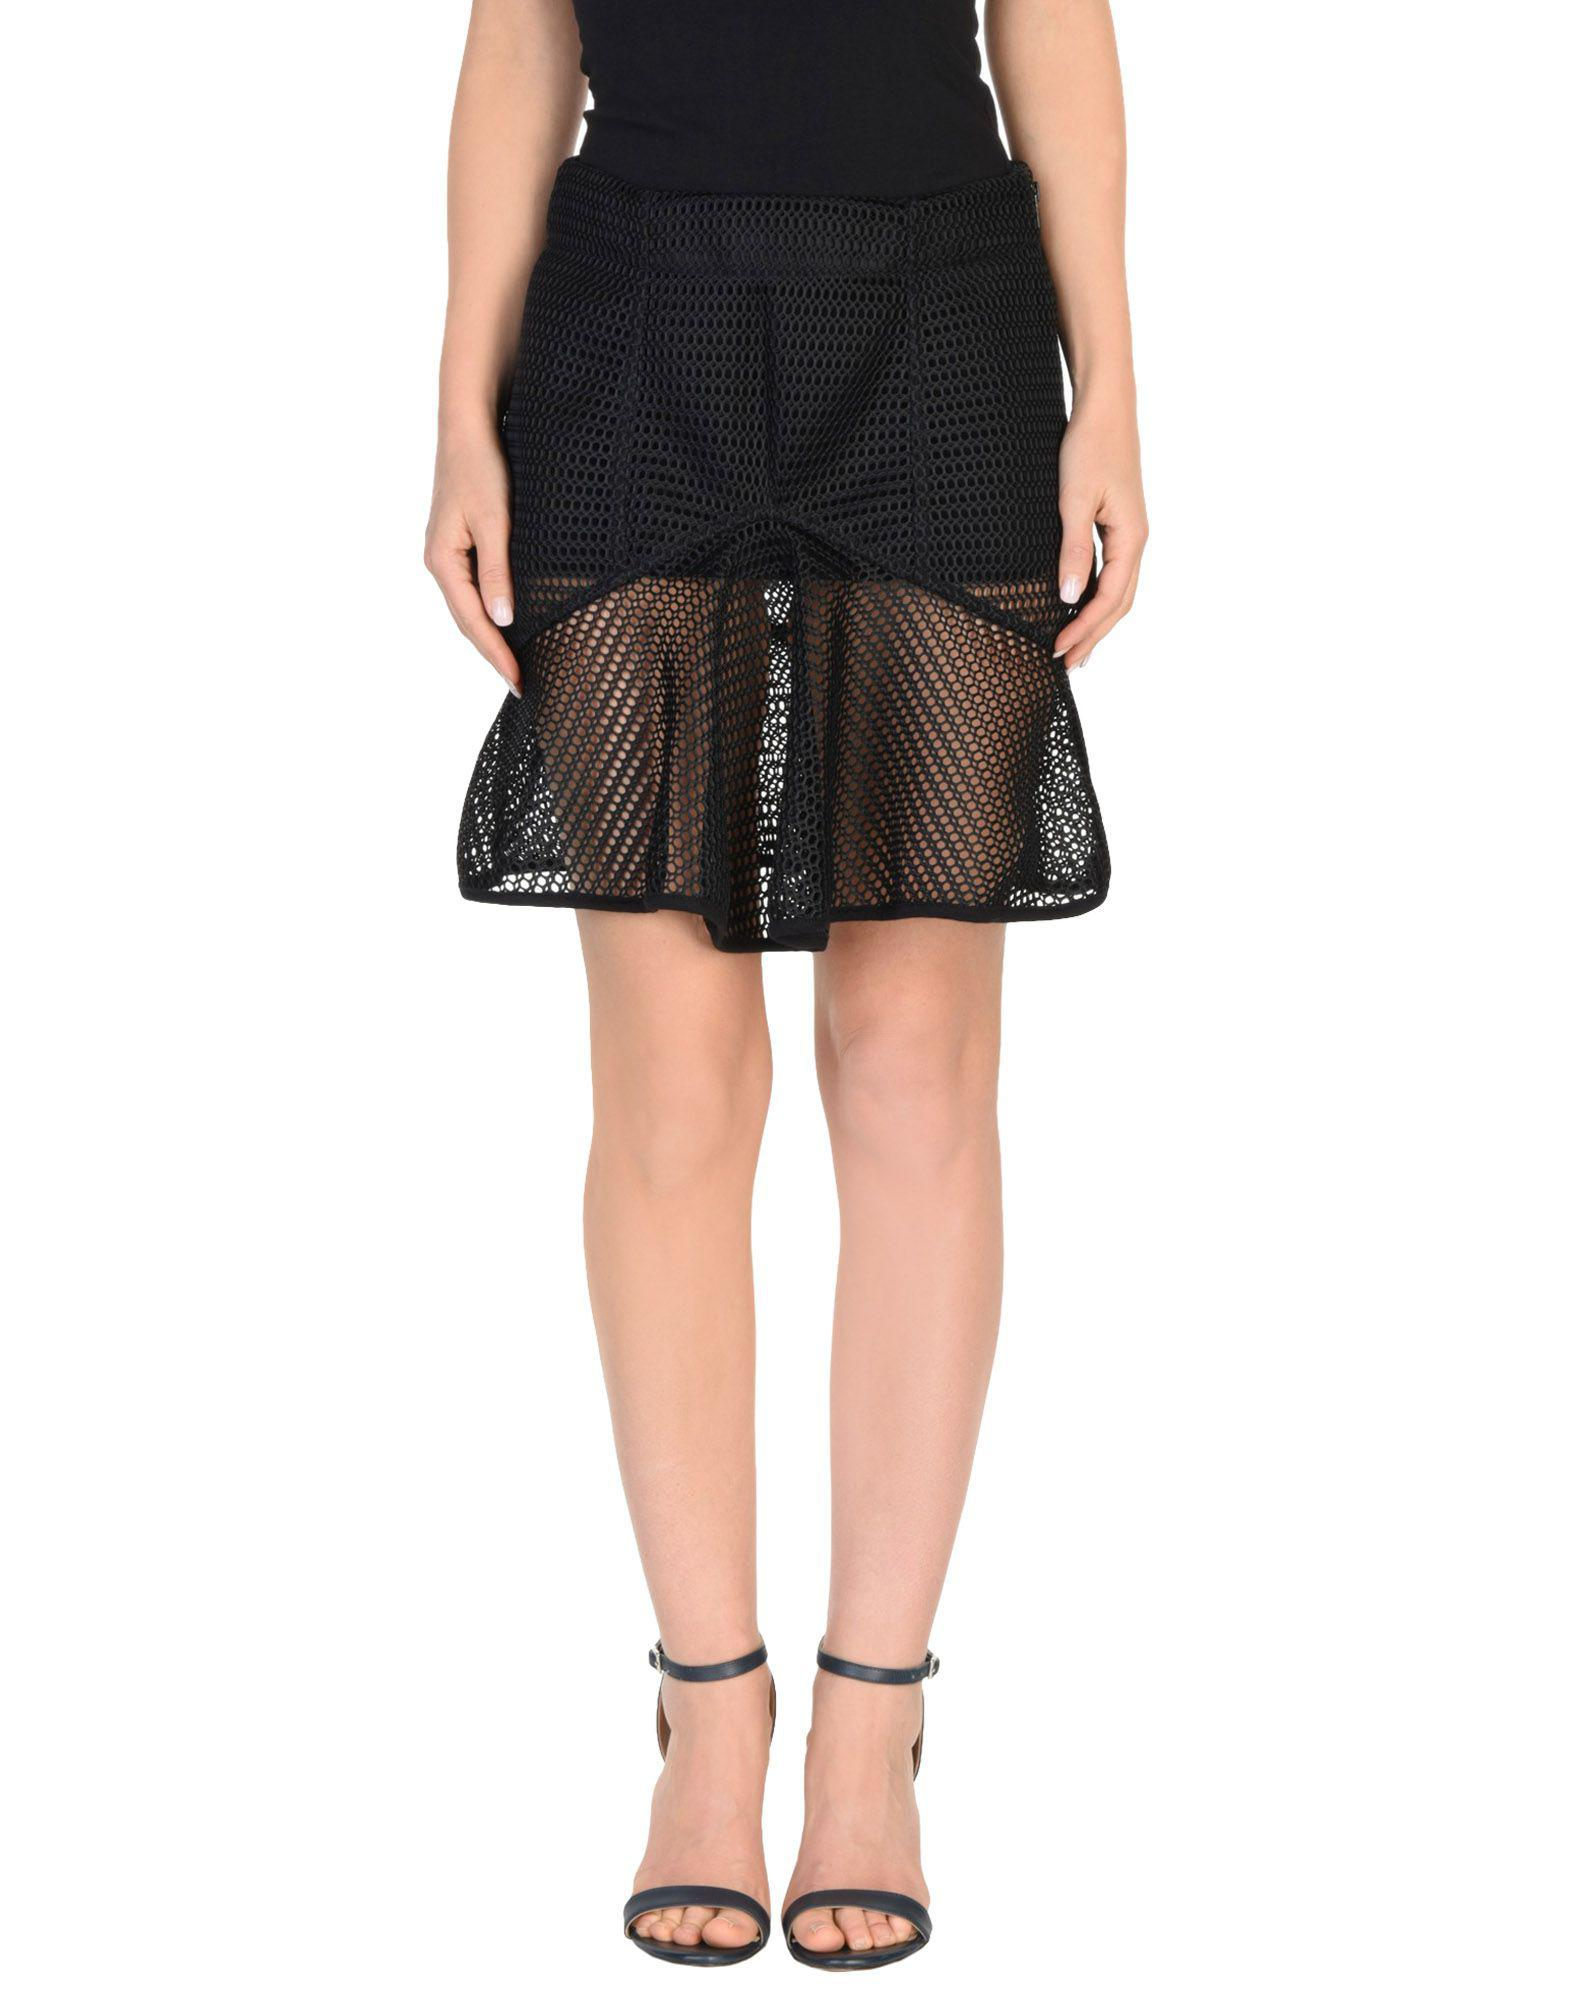 Sale Really Clearance From China SKIRTS - Mini skirts KTZ Prices Cheap Price Shop Cheap Price dChdL